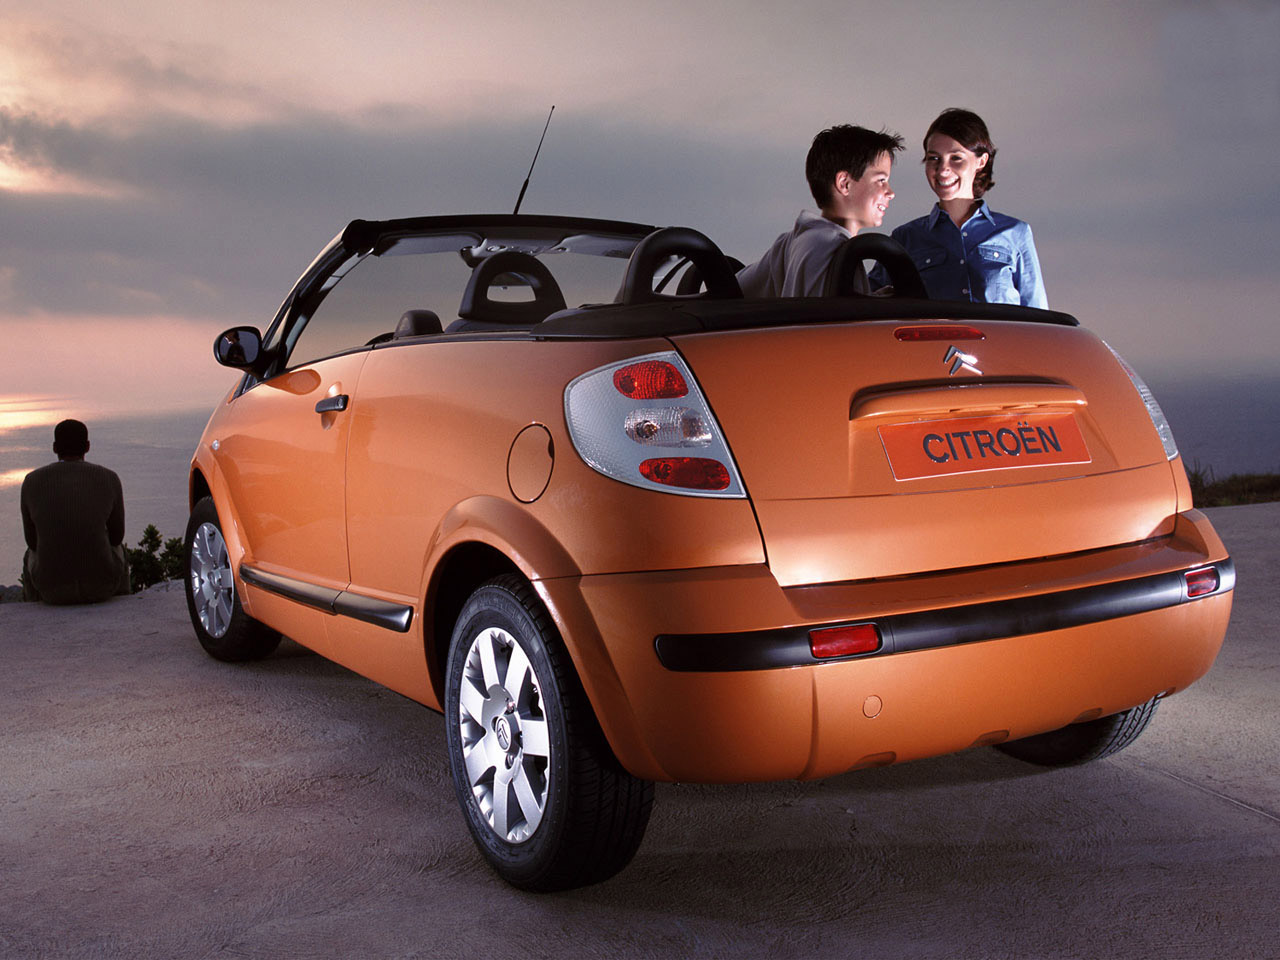 citroen c3 pluriel 2006 citroen c3 pluriel 2006 photo 12 car in pictures car photo gallery. Black Bedroom Furniture Sets. Home Design Ideas